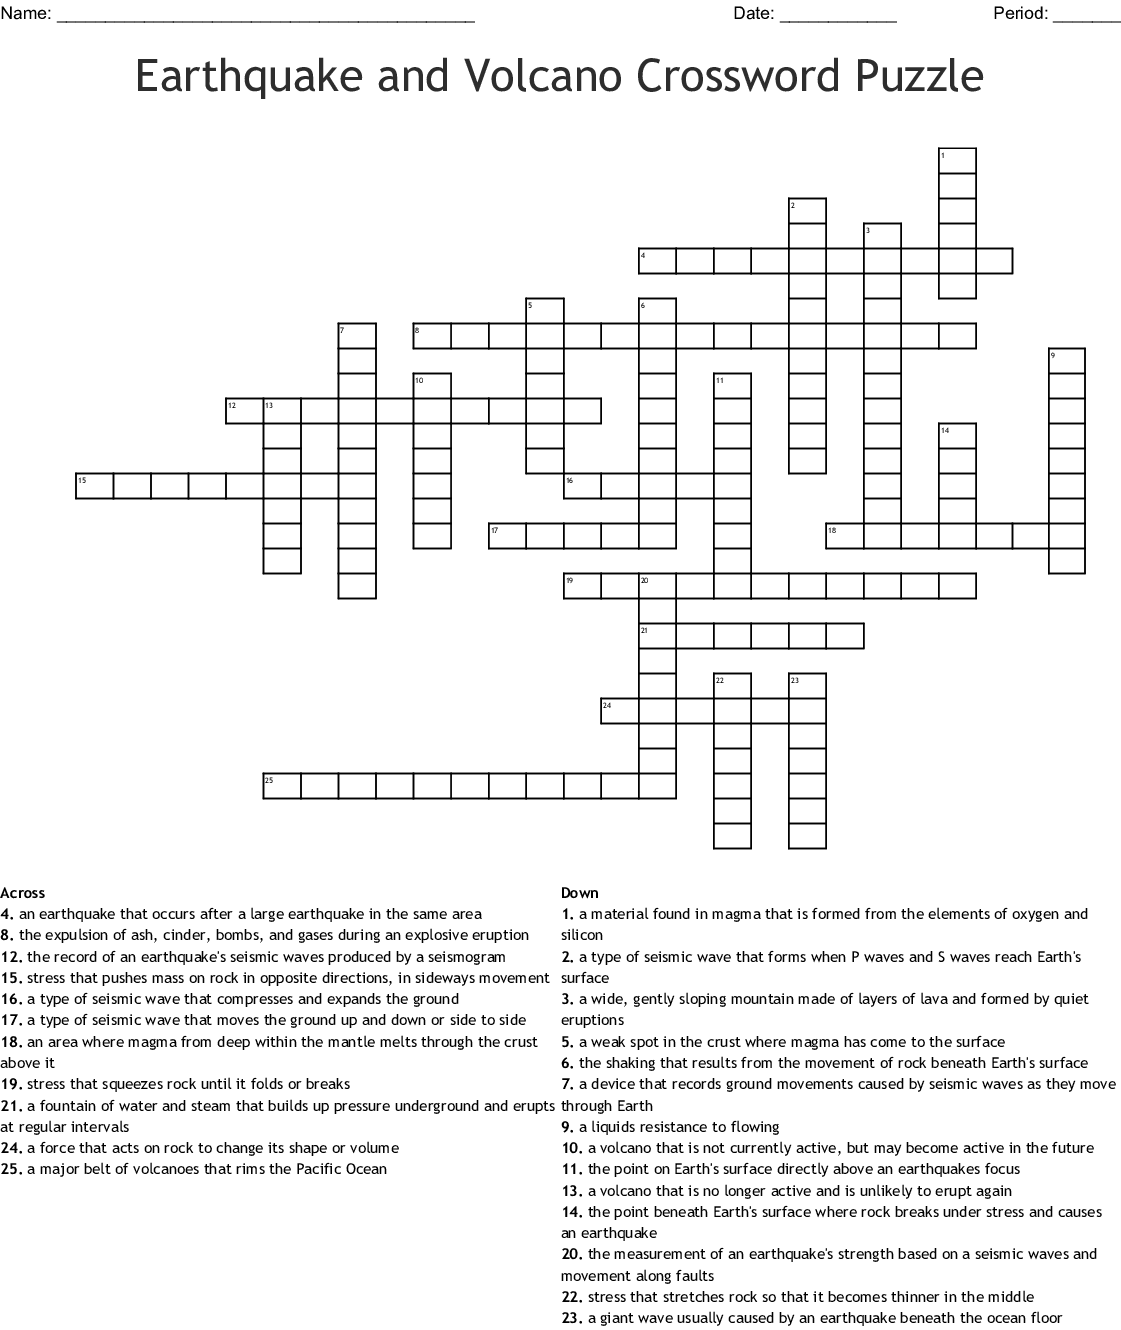 Earthquake And Volcano Crossword Puzzle